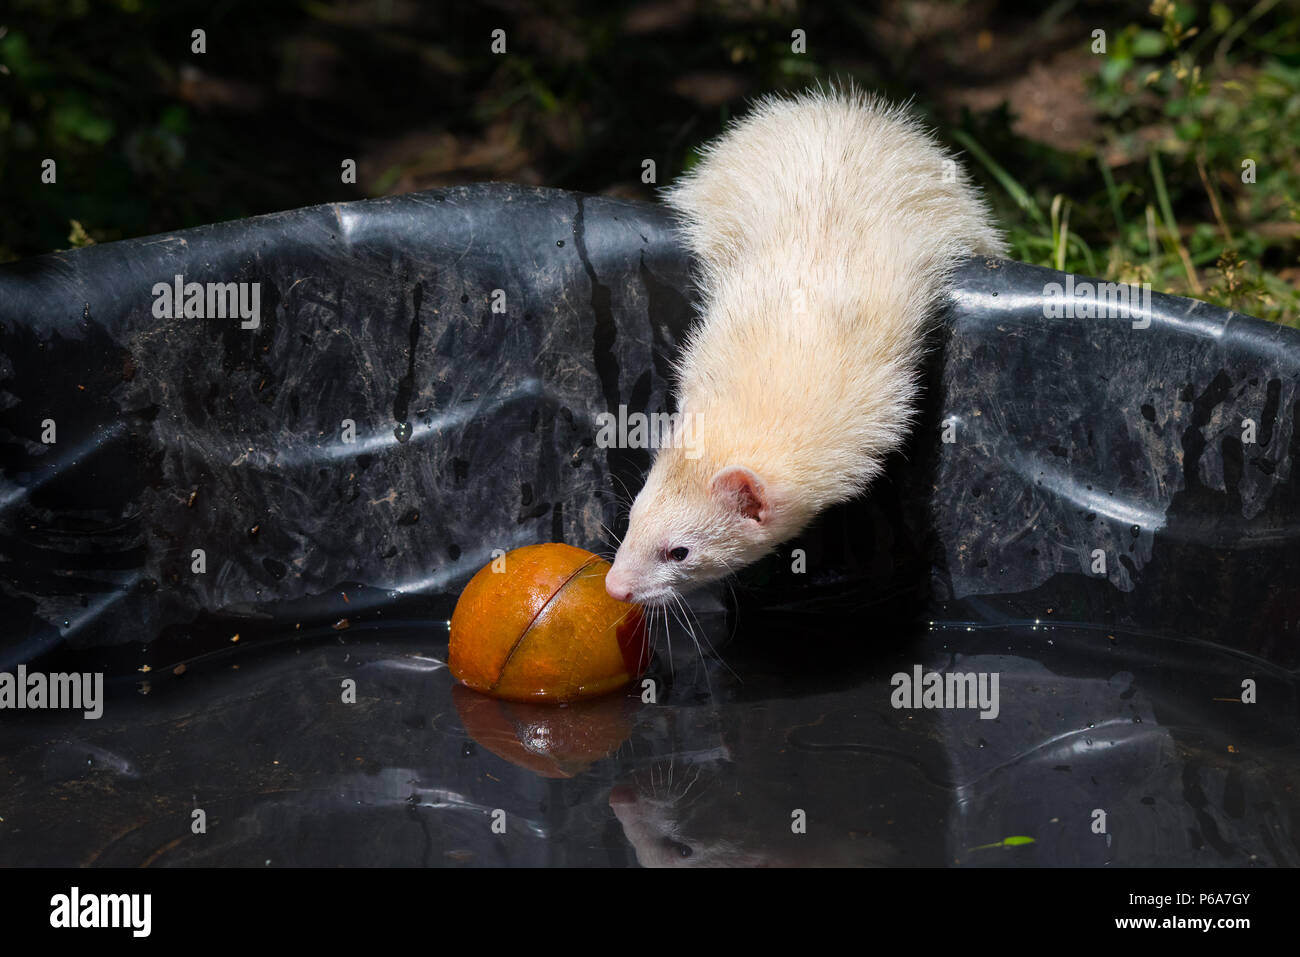 A ferret (domesticated form of the European Polecat) playing with its toys in a kiddie pool on a hot summer day. - Stock Image